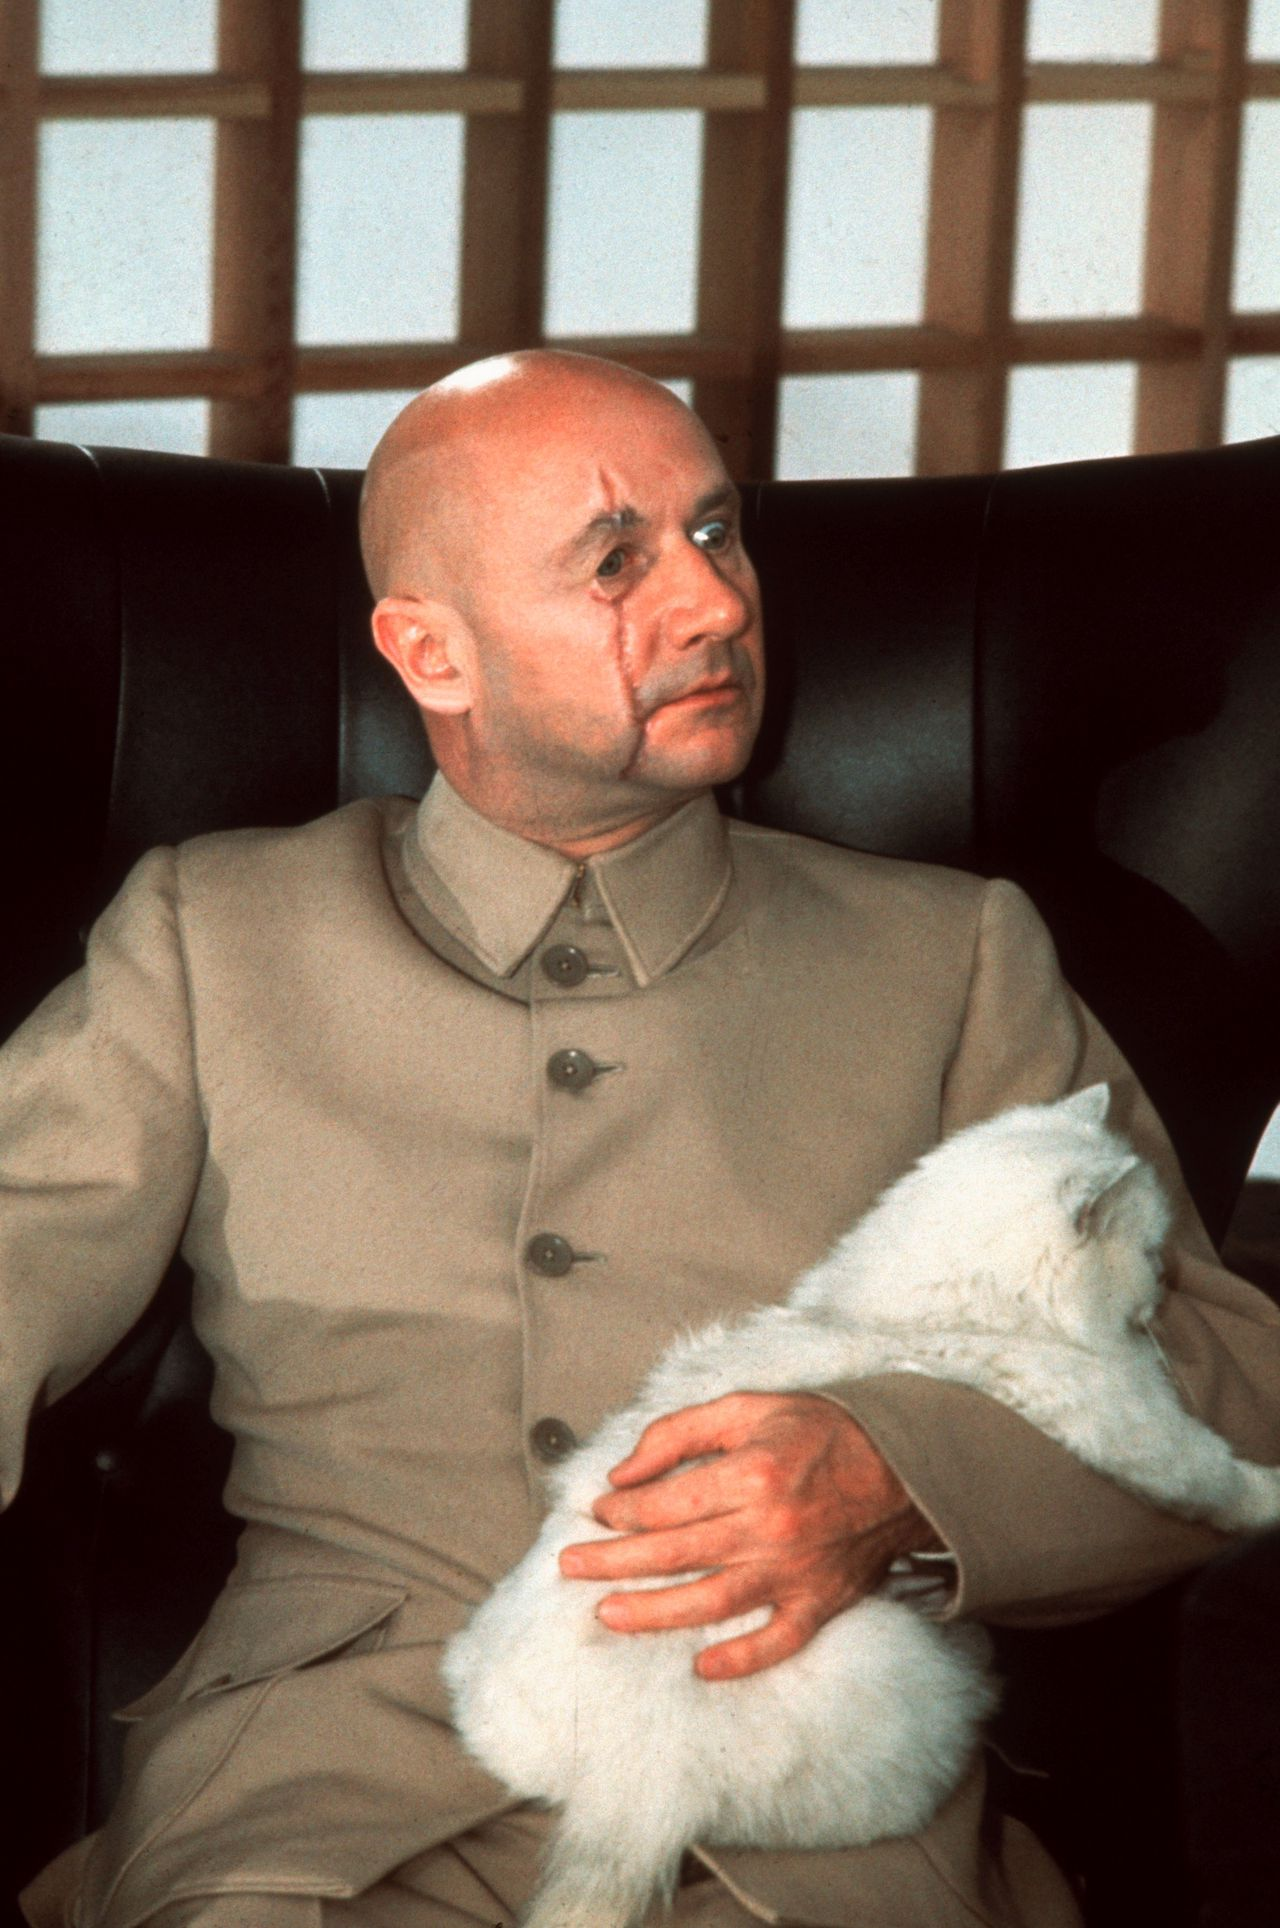 Donald Pleasence als Blofeld You Only Live Twice (1967) Pers: Donald Pleasence Dir: Lewis Gilbert Ref: !YO001HY Photo Credit: [ Danjaq/Eon/UA / The Kobal Collection ] Editorial use only related to cinema, television and personalities. Not for cover use, advertising or fictional works without specific prior agreement